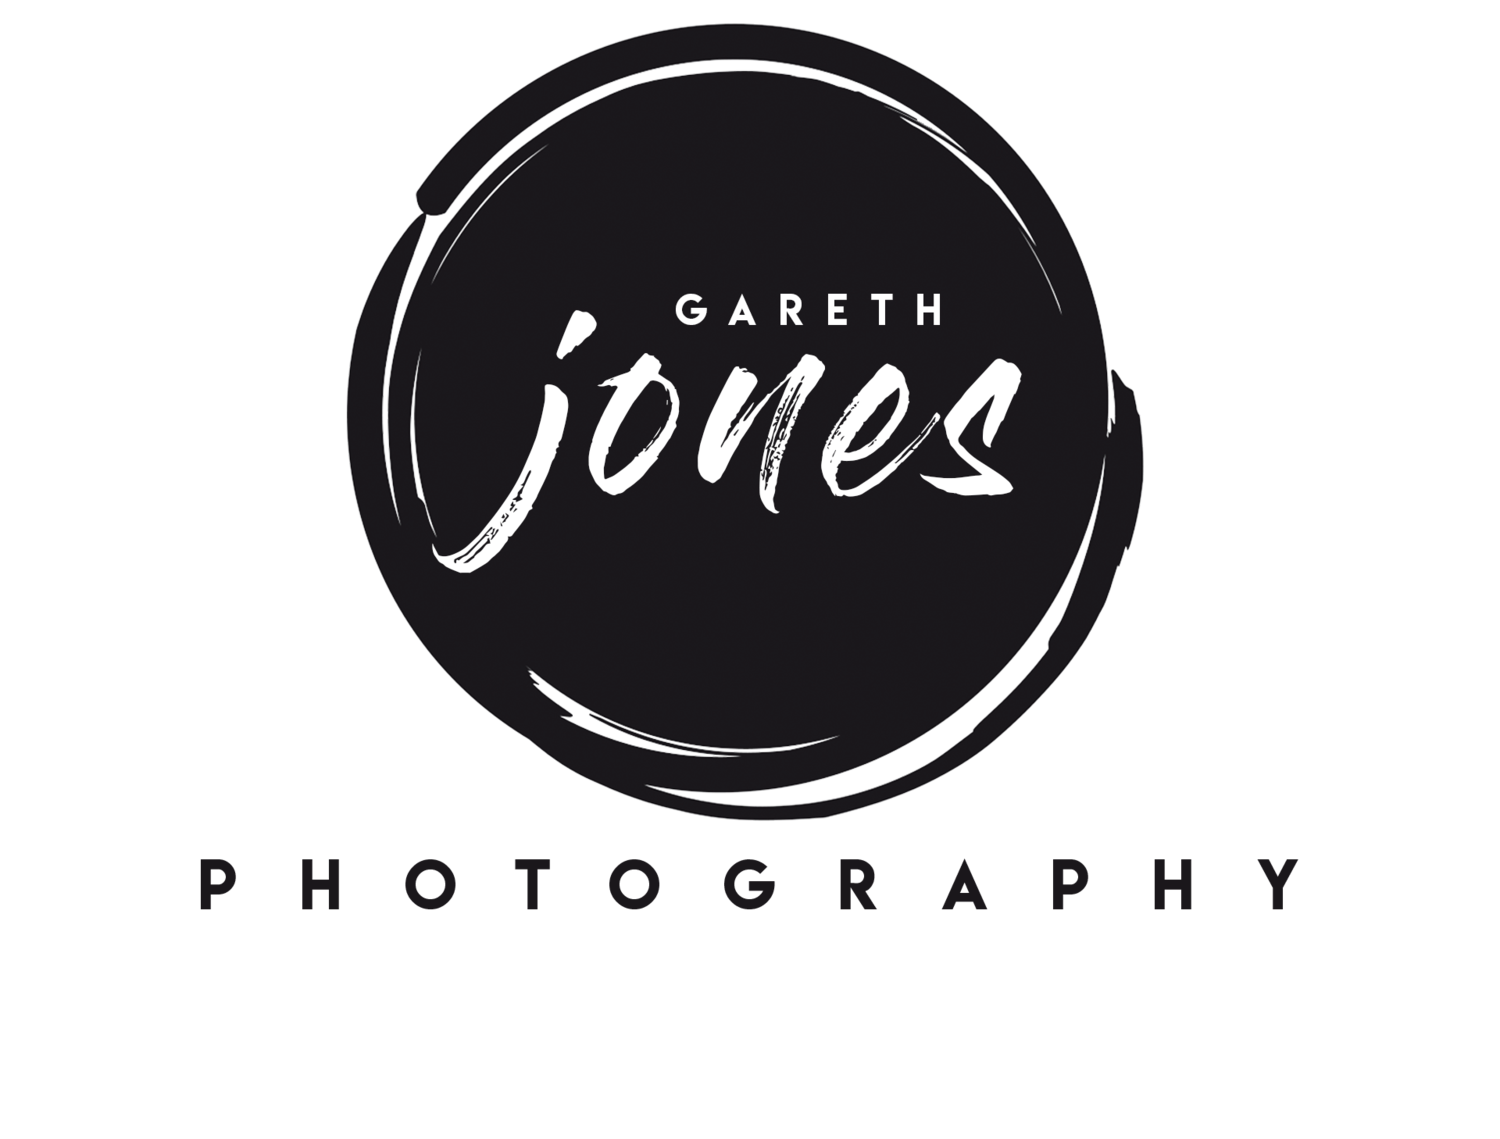 GARETH JONES PHOTOGRAPHY